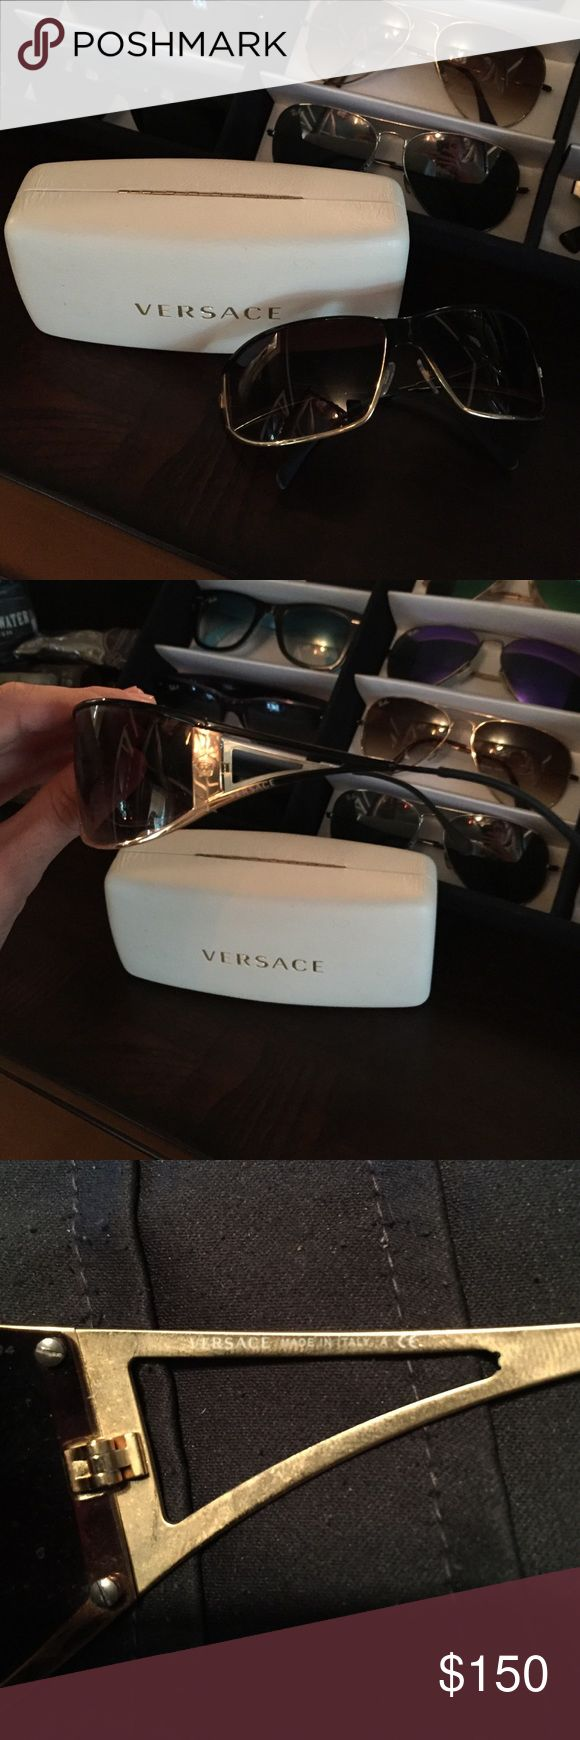 versace sunglasses that look like ray bans  versace sunglasses men's